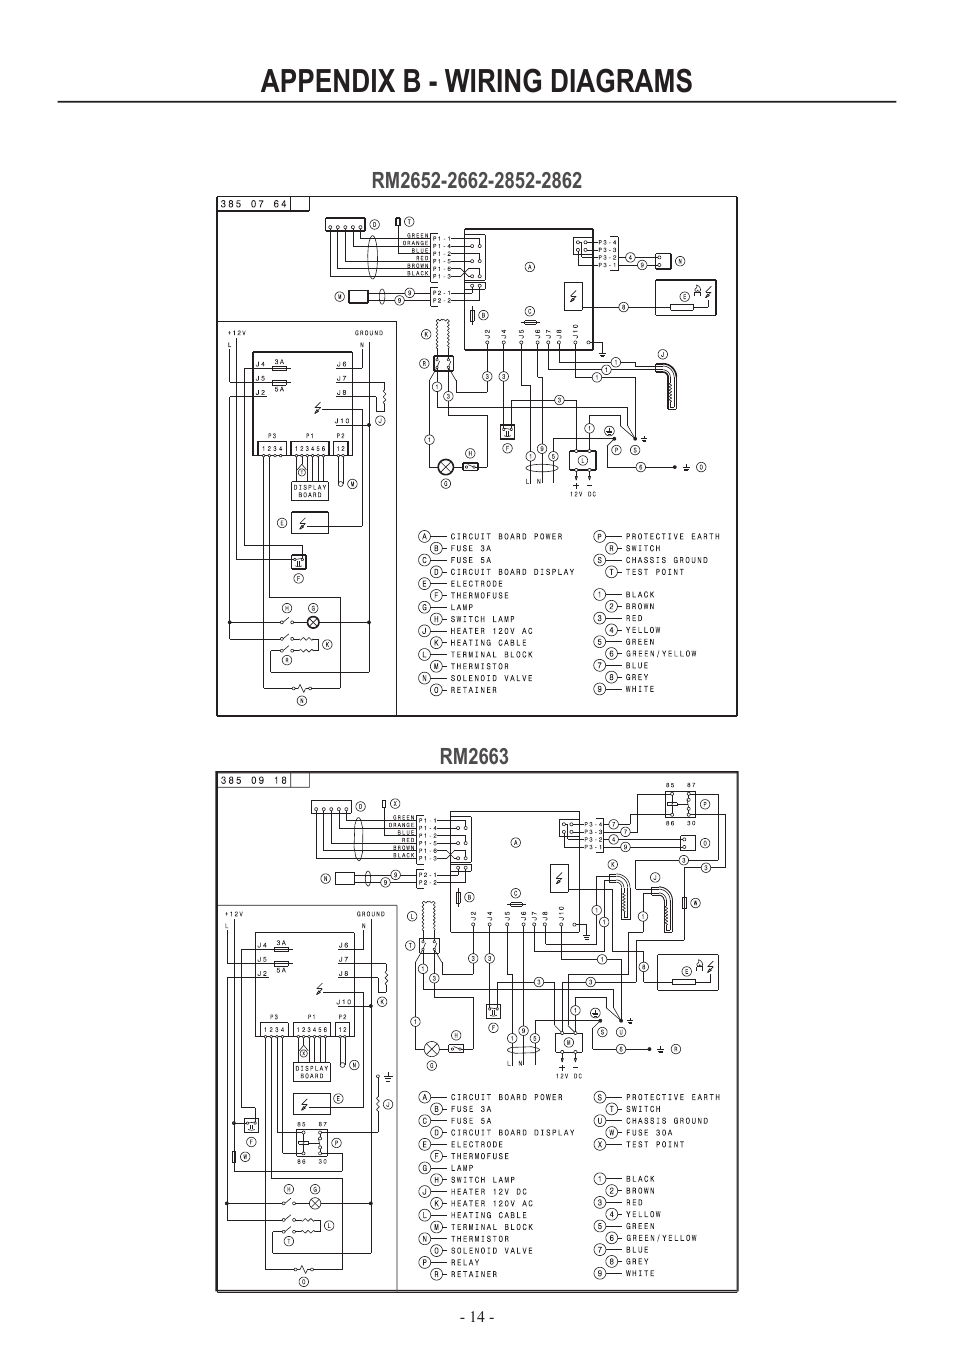 wiring diagrams for kenmore refrigerators star delta control diagram with timer appendix b - | dometic rm2852 user manual page 14 / 16